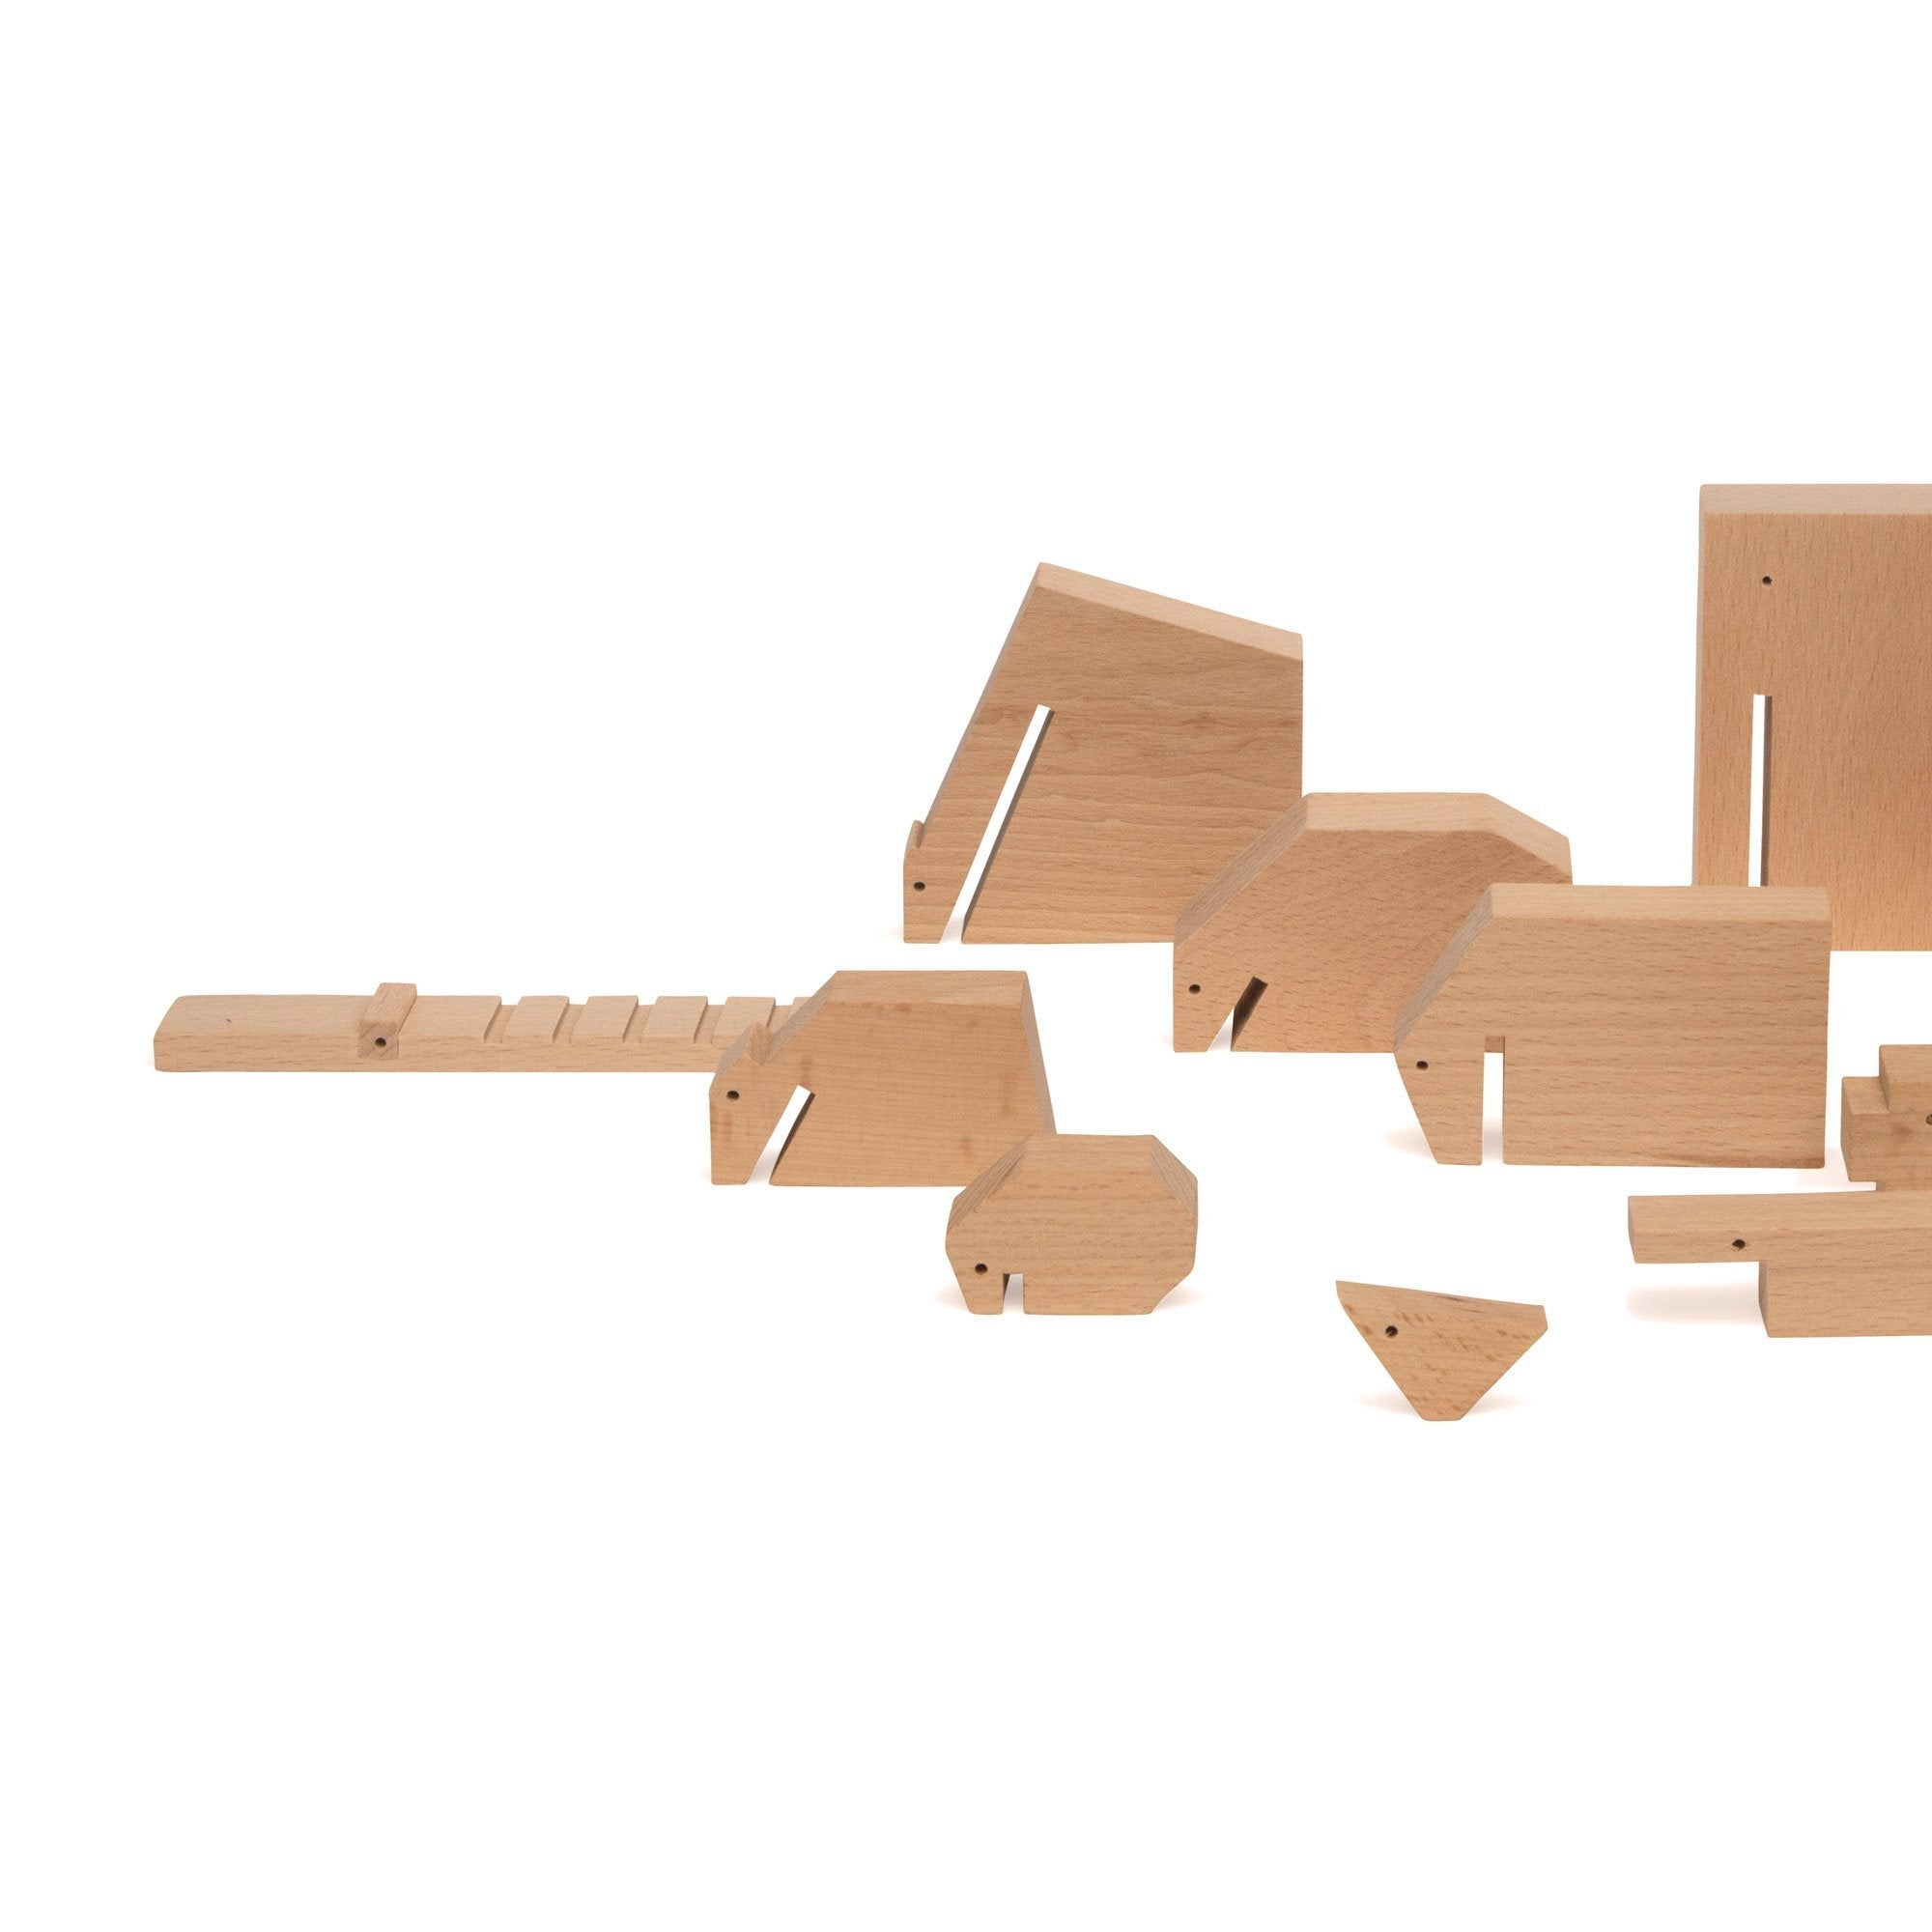 Minimal Wooden Animal Set by Floris Hovers - EcoFreax | Think Bigger.